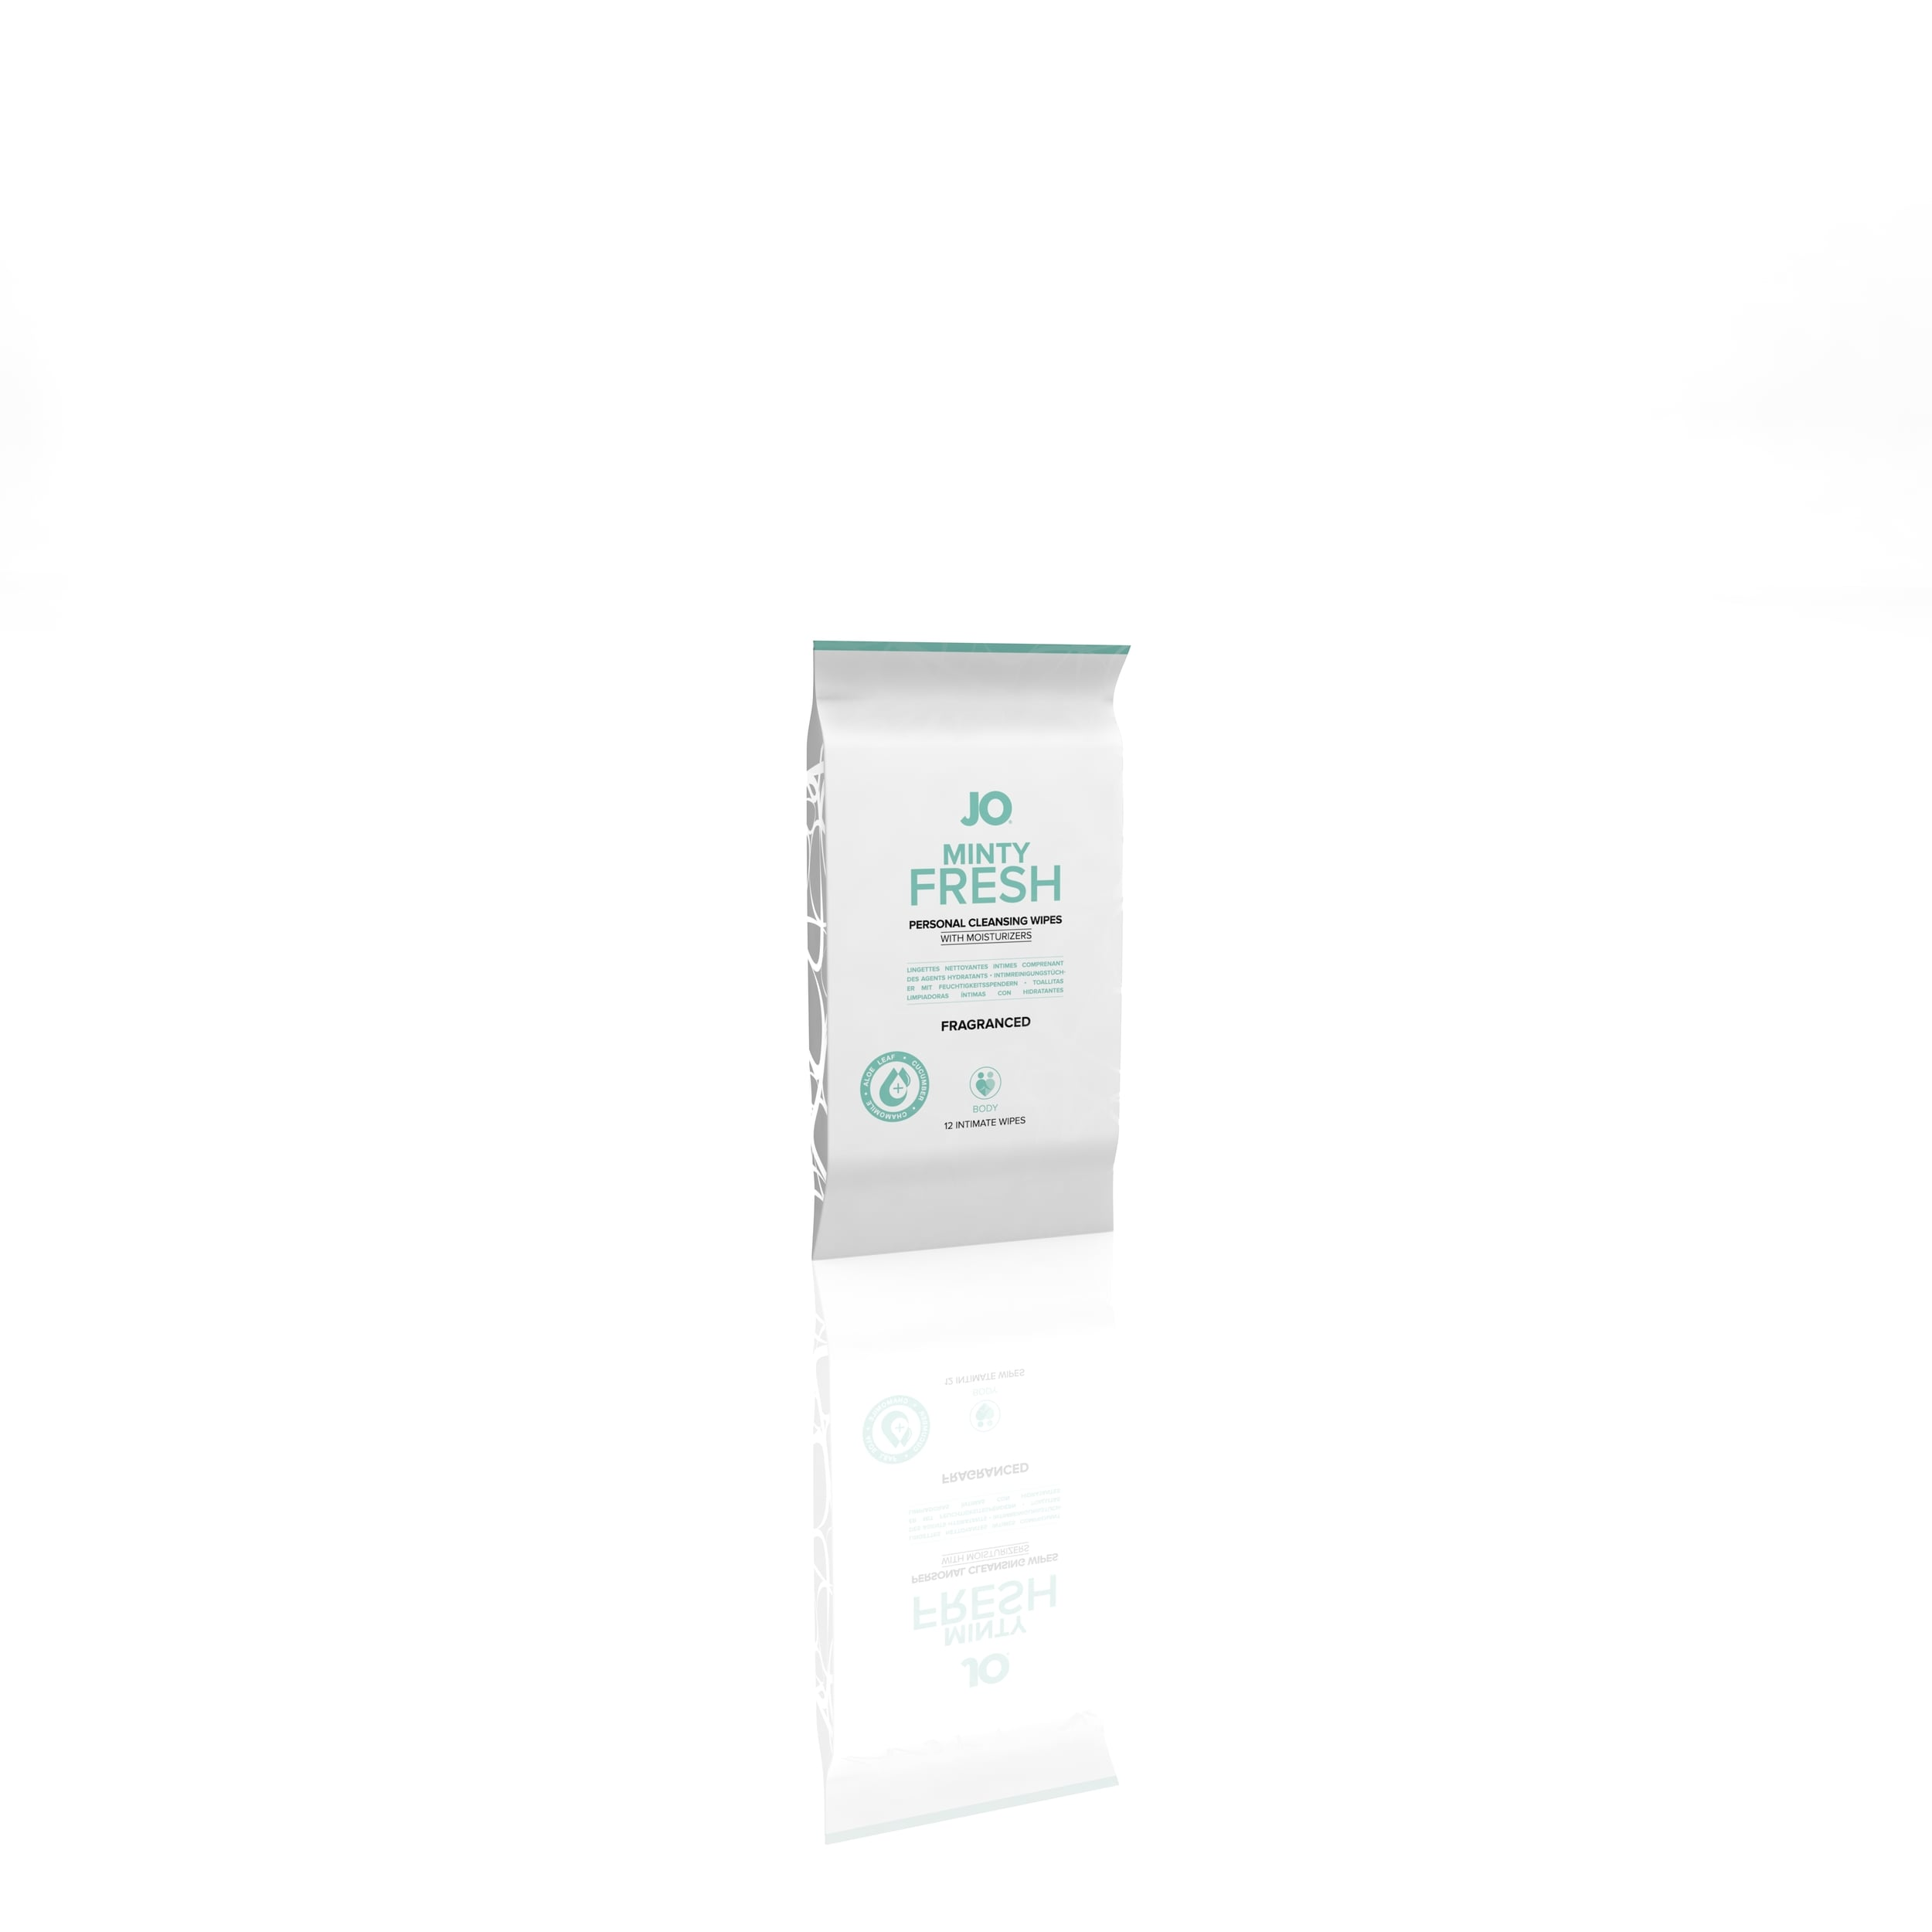 10223 - JO PERSONAL CLEANSING WIPES - MINTY FRESH - 12 pack (MOQ 12 units - Includes Counter Display) ISO.jpg